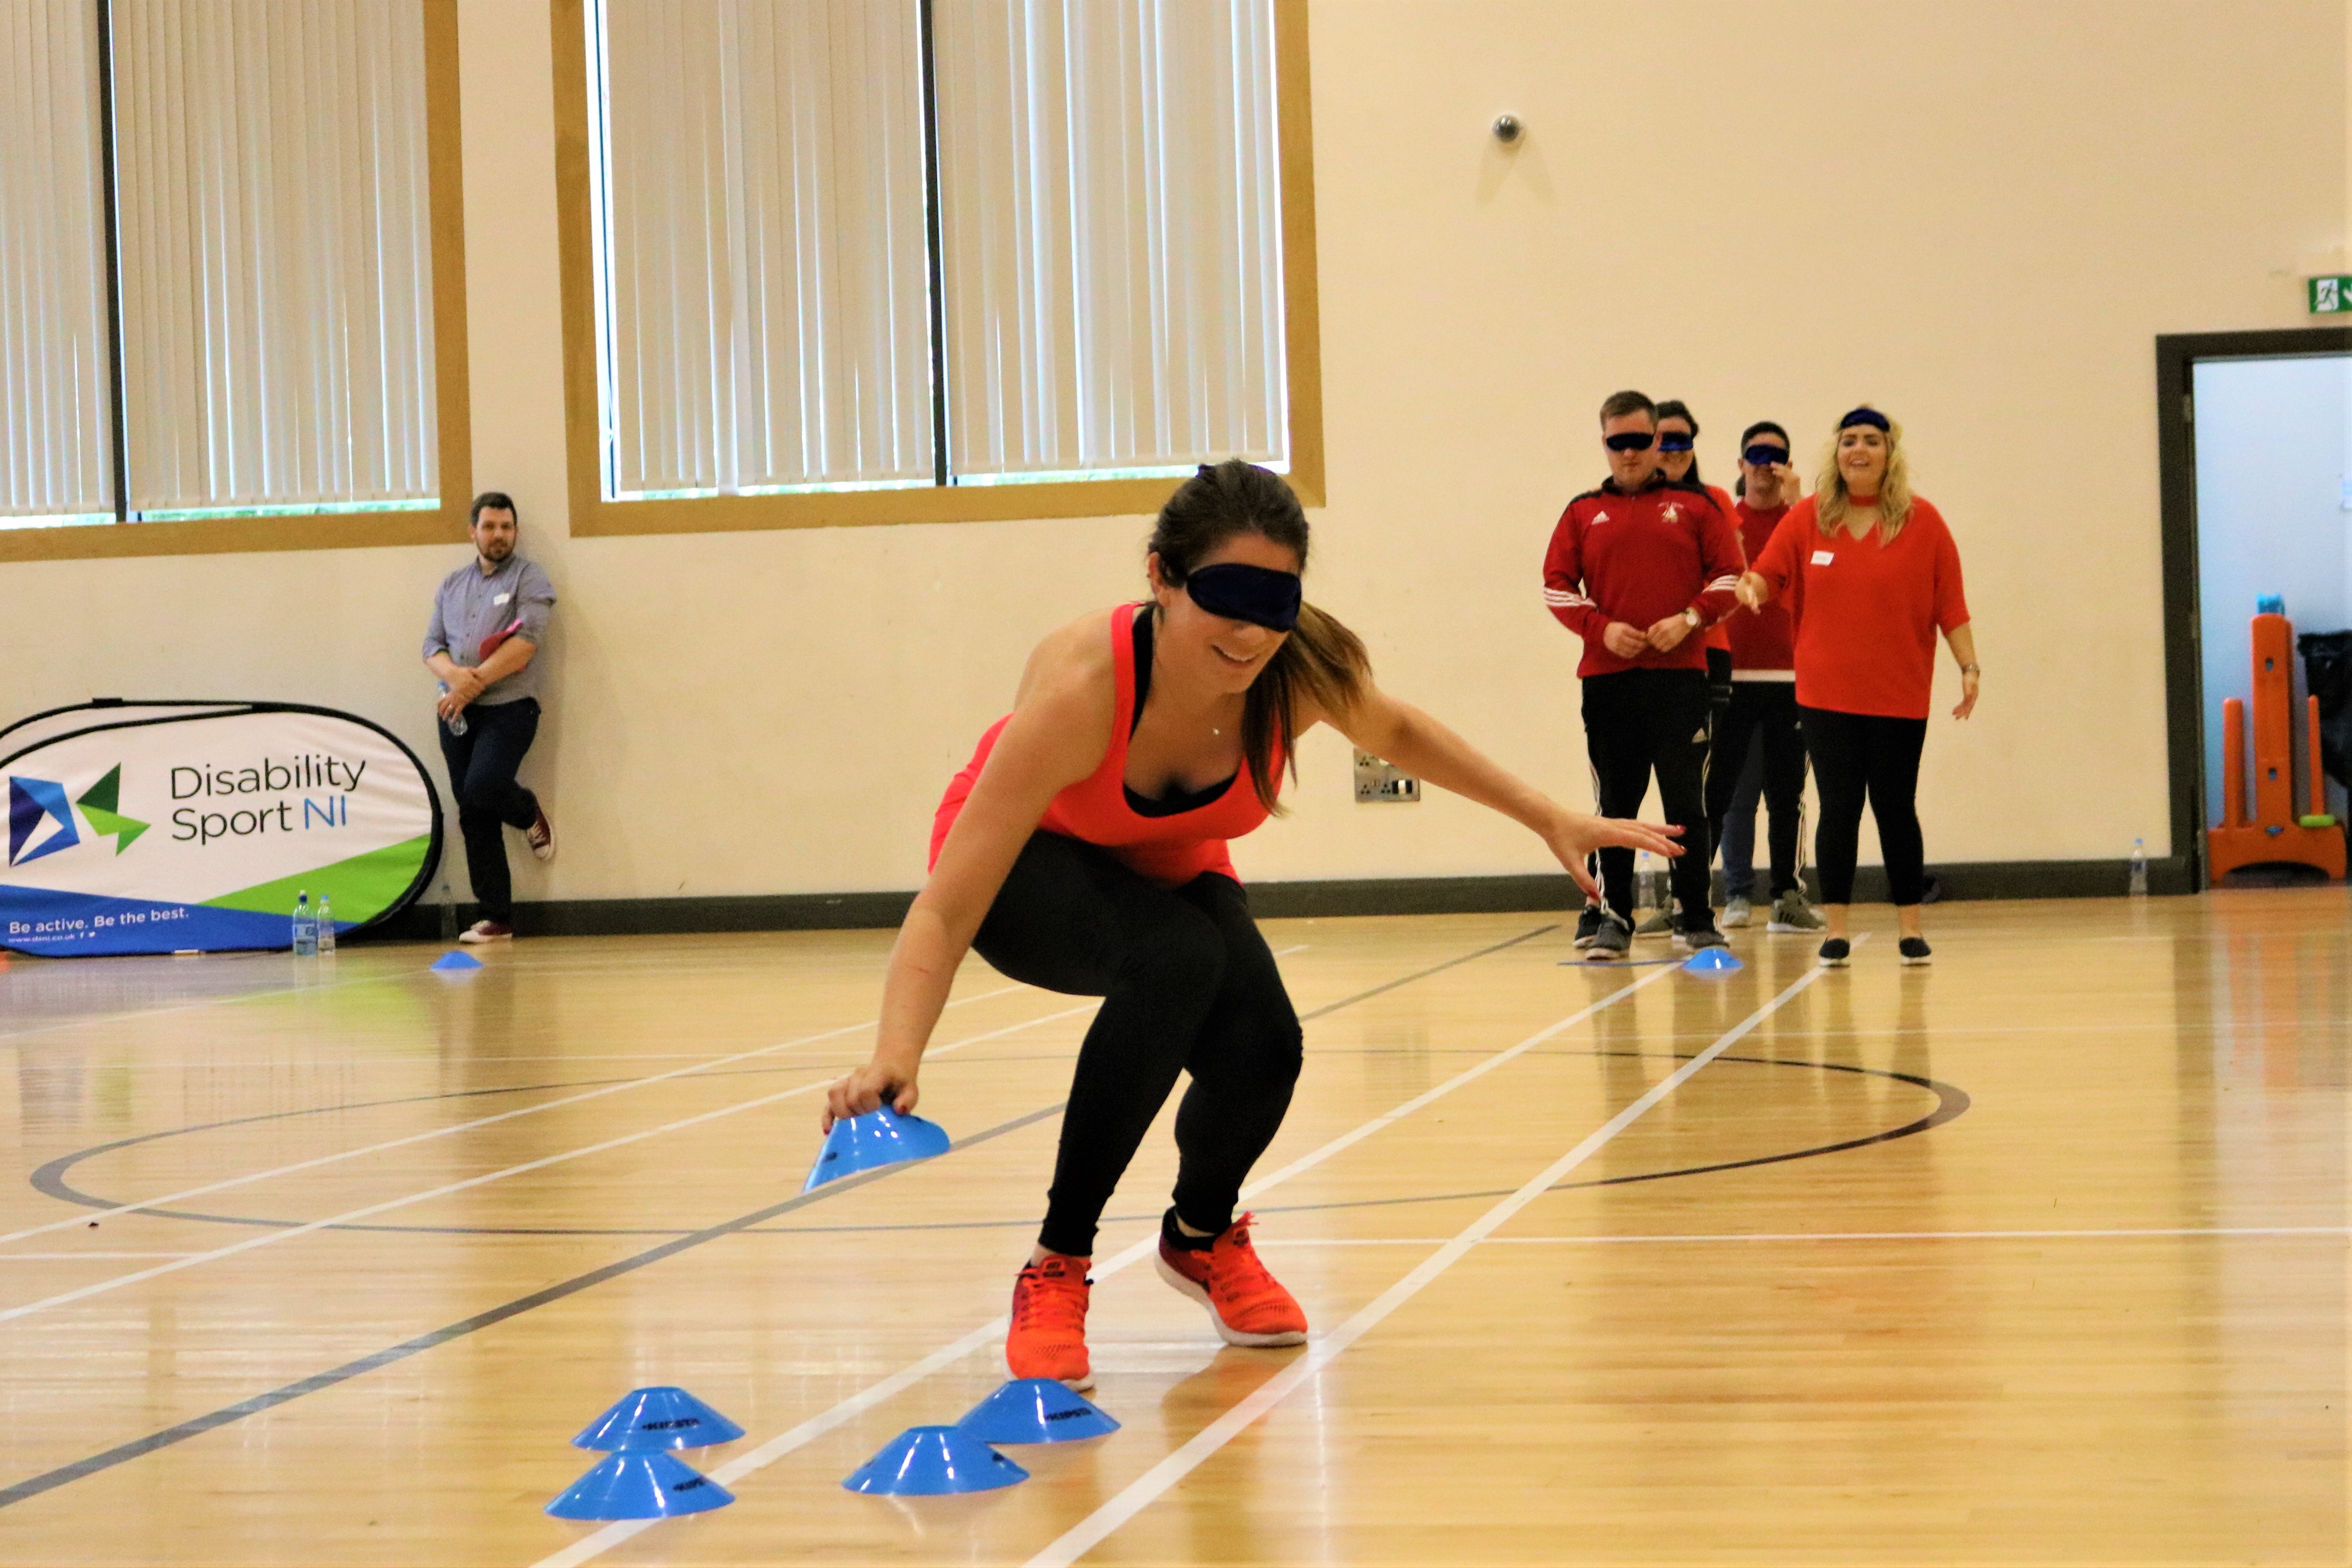 UK Disability Inclusion in Sport